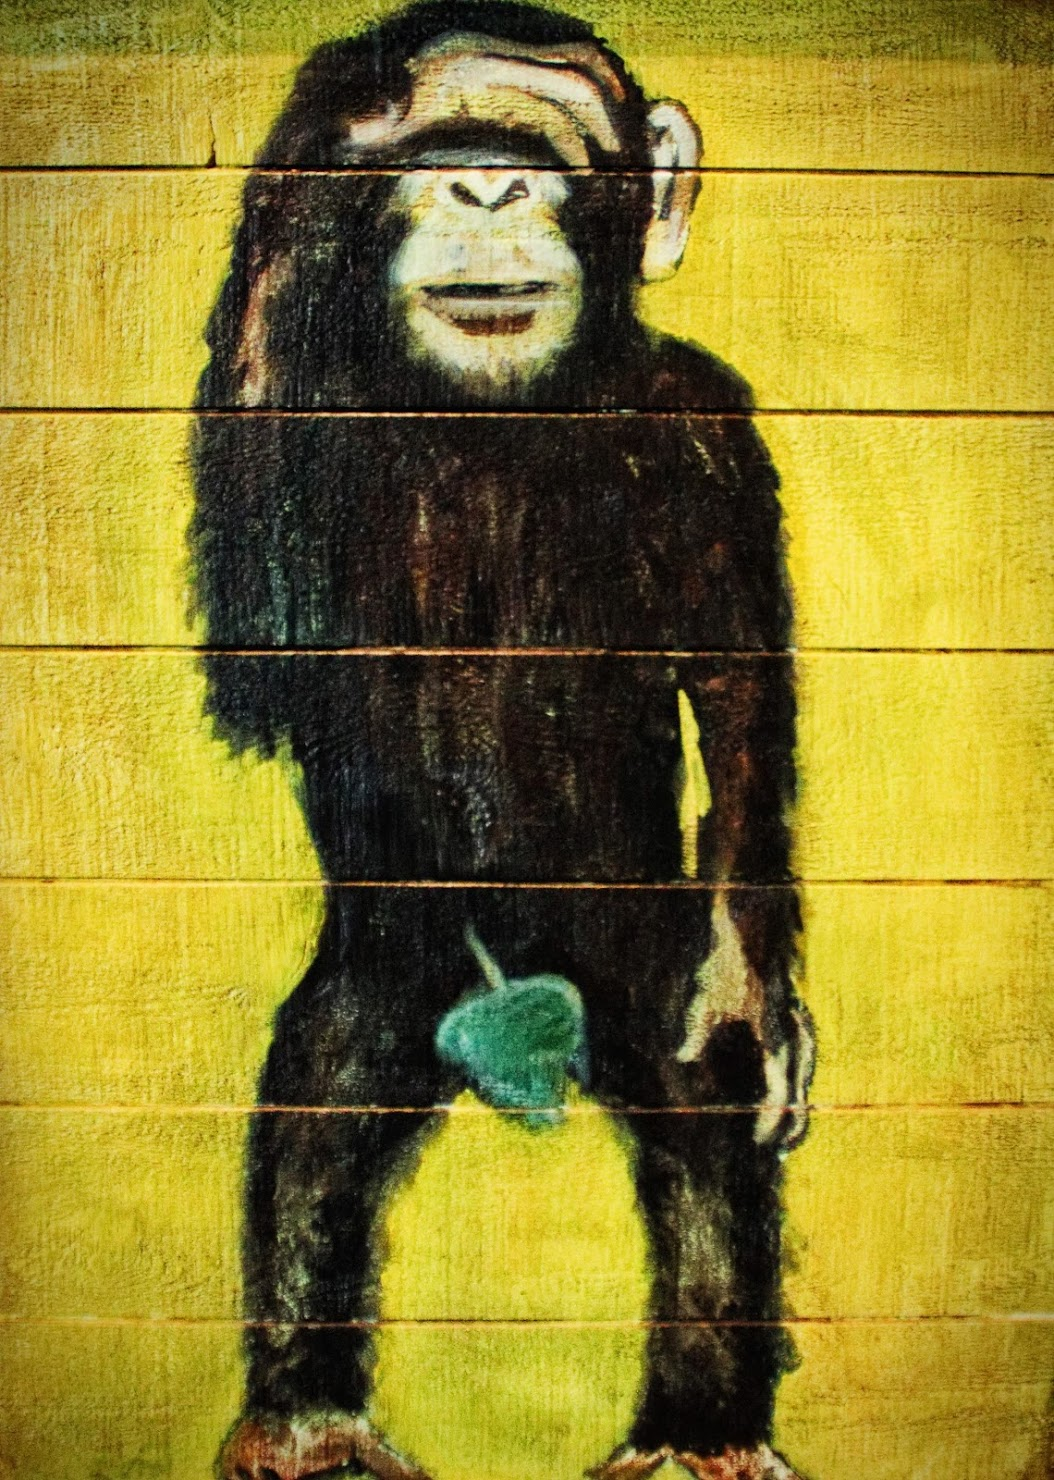 painting of monkey standing